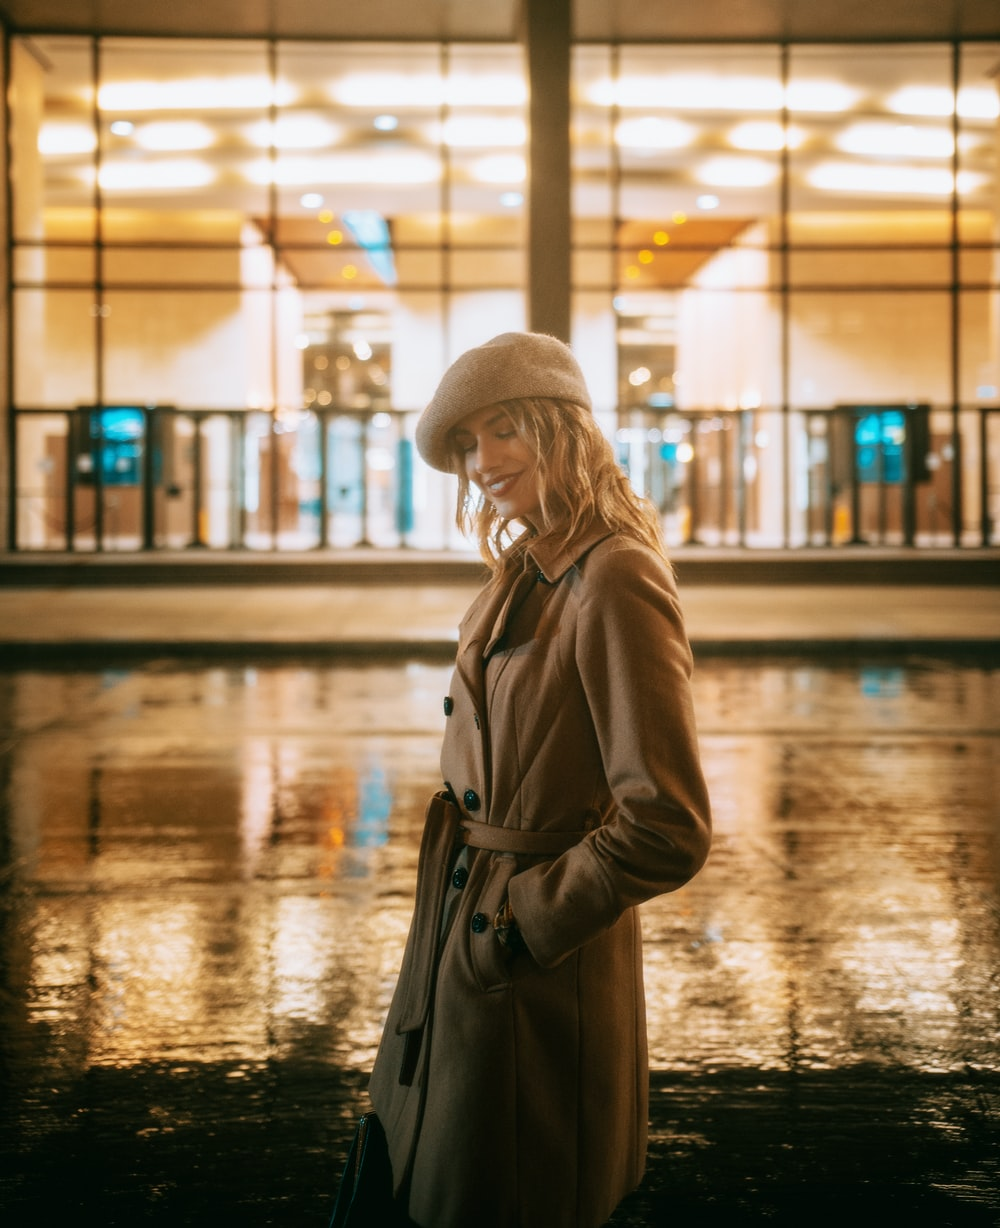 woman in brown coat and white knit cap standing on wet ground during night time